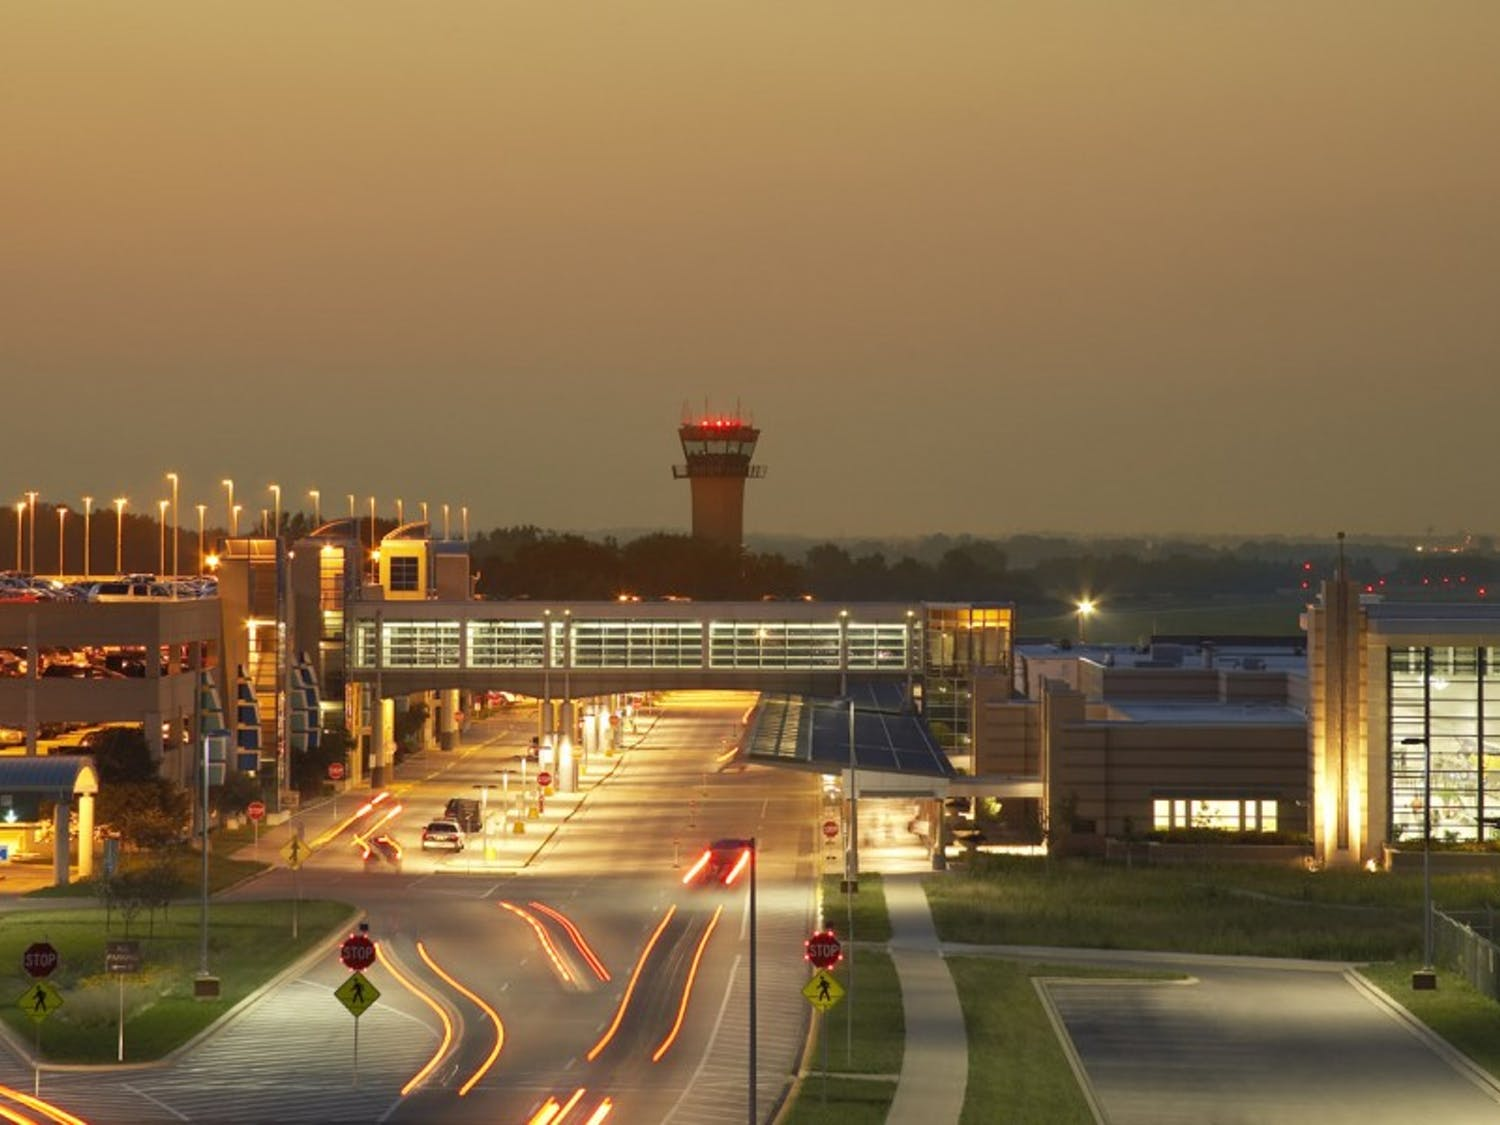 Dane County Regional Airport Director Brad Livingston will retire at the end of August after 15 years in the position.